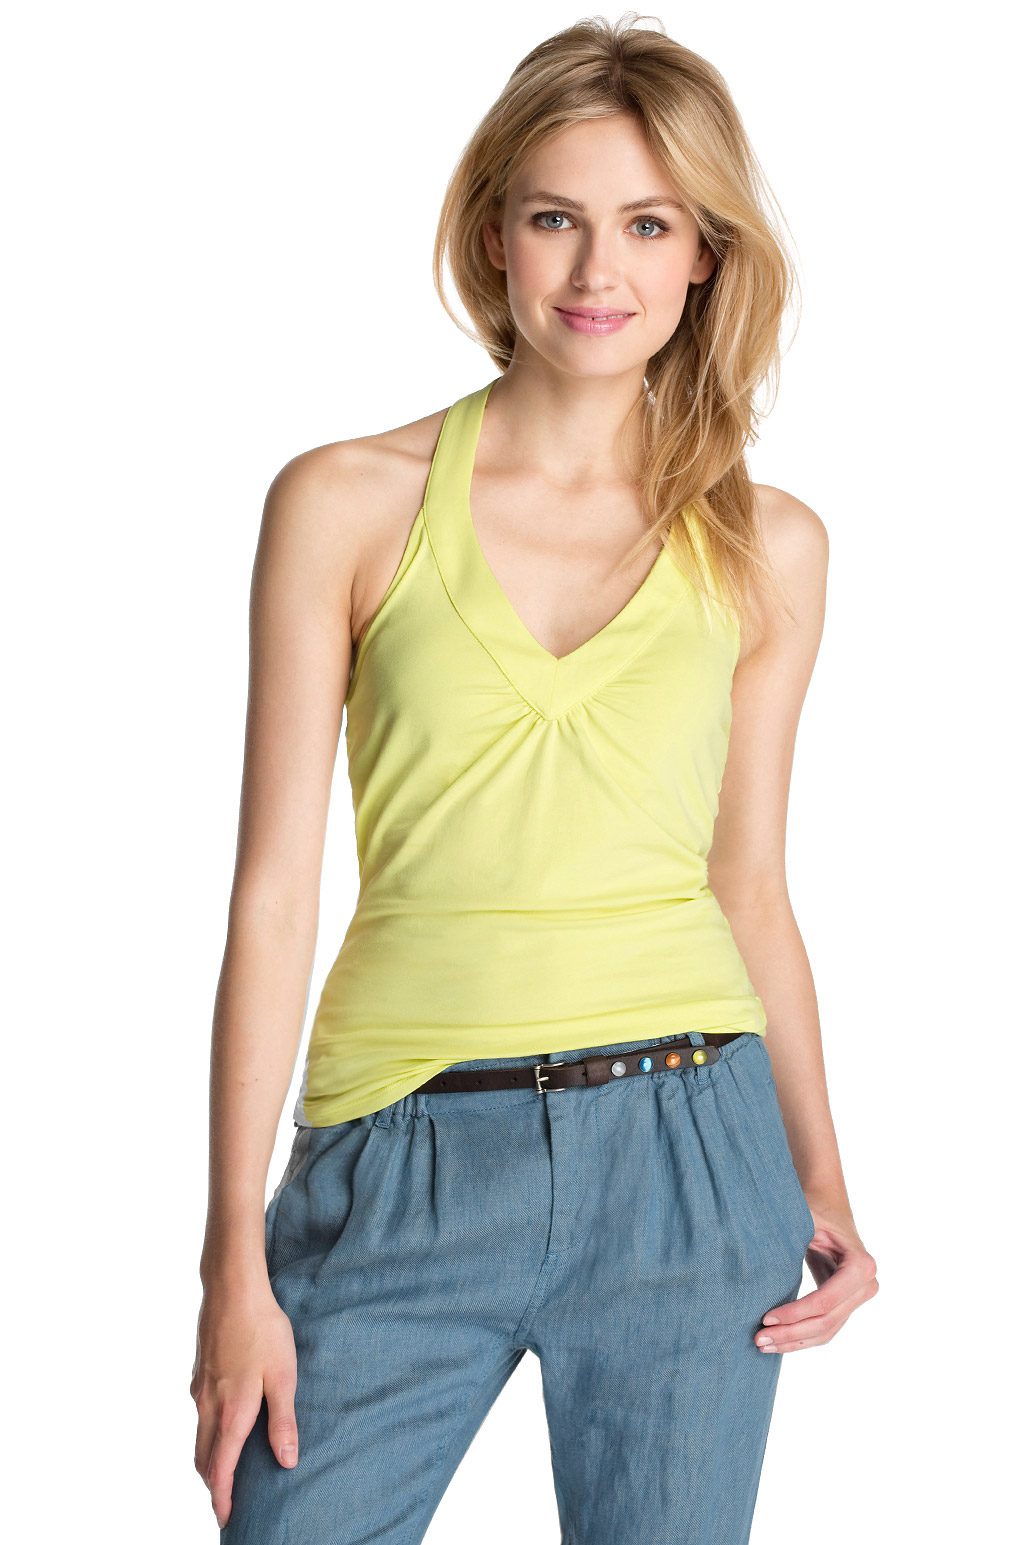 Find halter neck tops at ShopStyle. Shop the latest collection of halter neck tops from the most popular stores - all in one place.